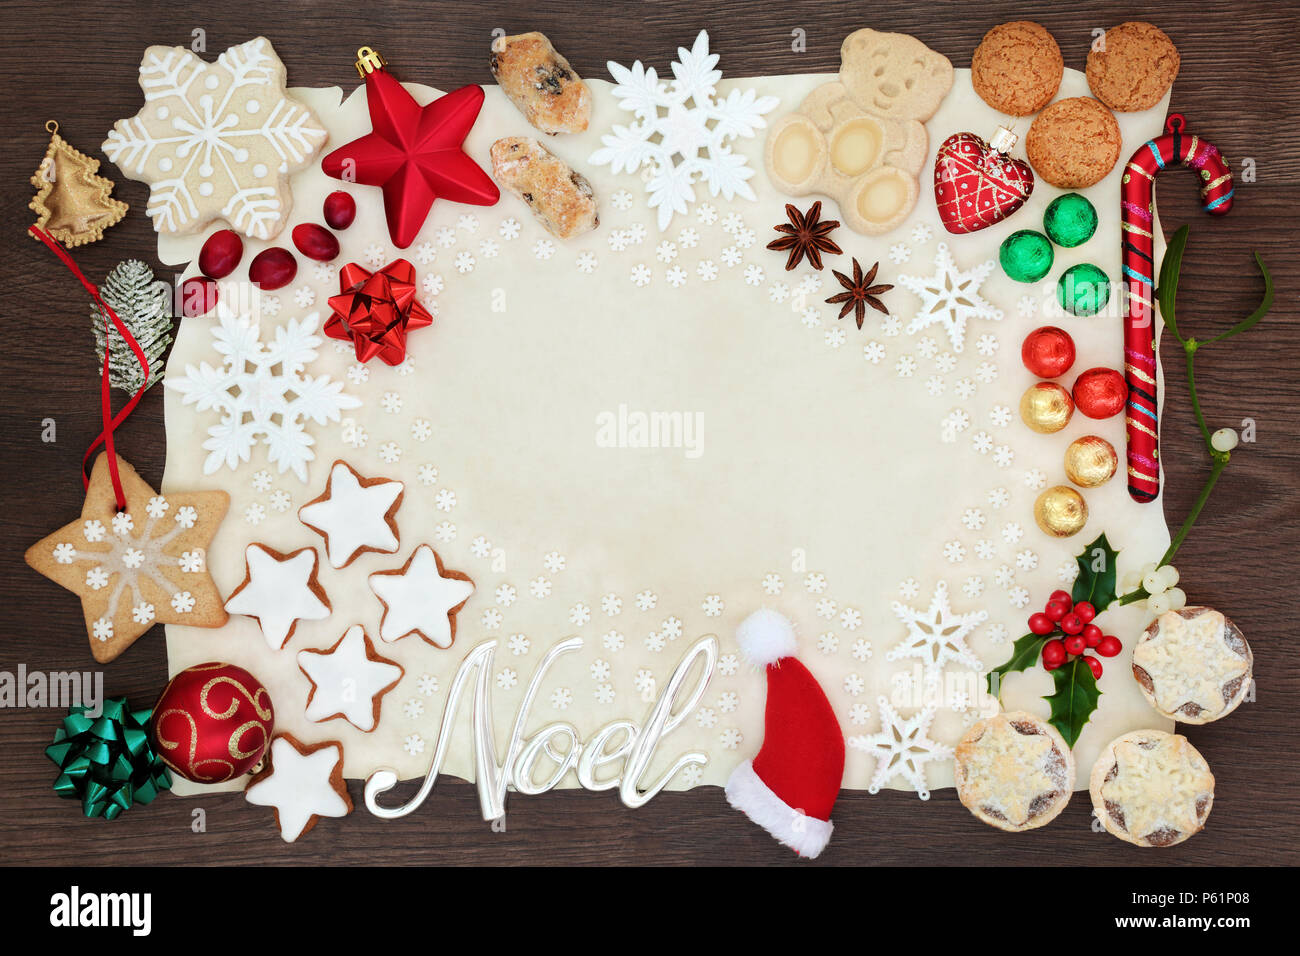 Noel and Christmas background border with silver sign and tree decorations, snowflakes, biscuits, cakes, chocolates and winter flora on parchment pape - Stock Image